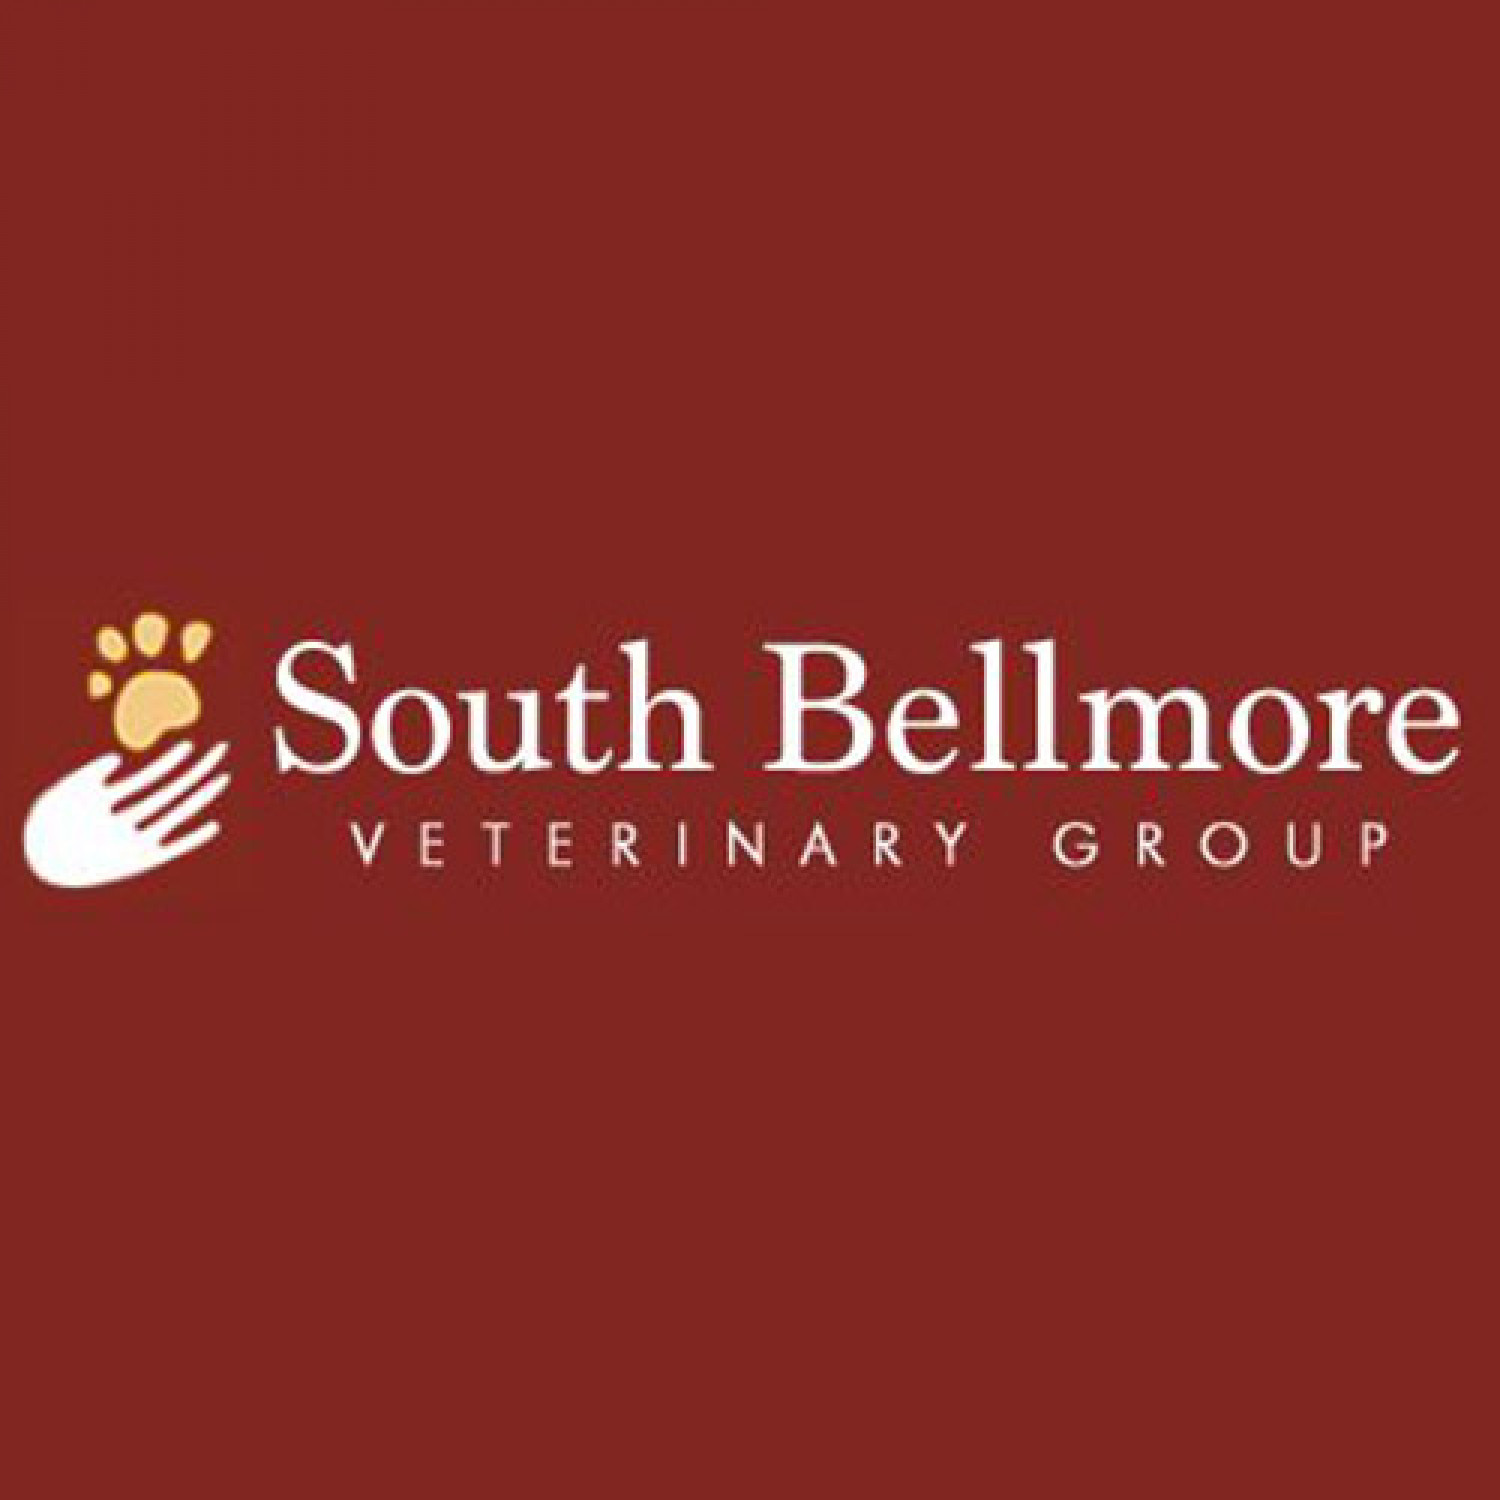 South Bellmore Veterinary Group Review: Take care of your senior pets with these tips Infographic